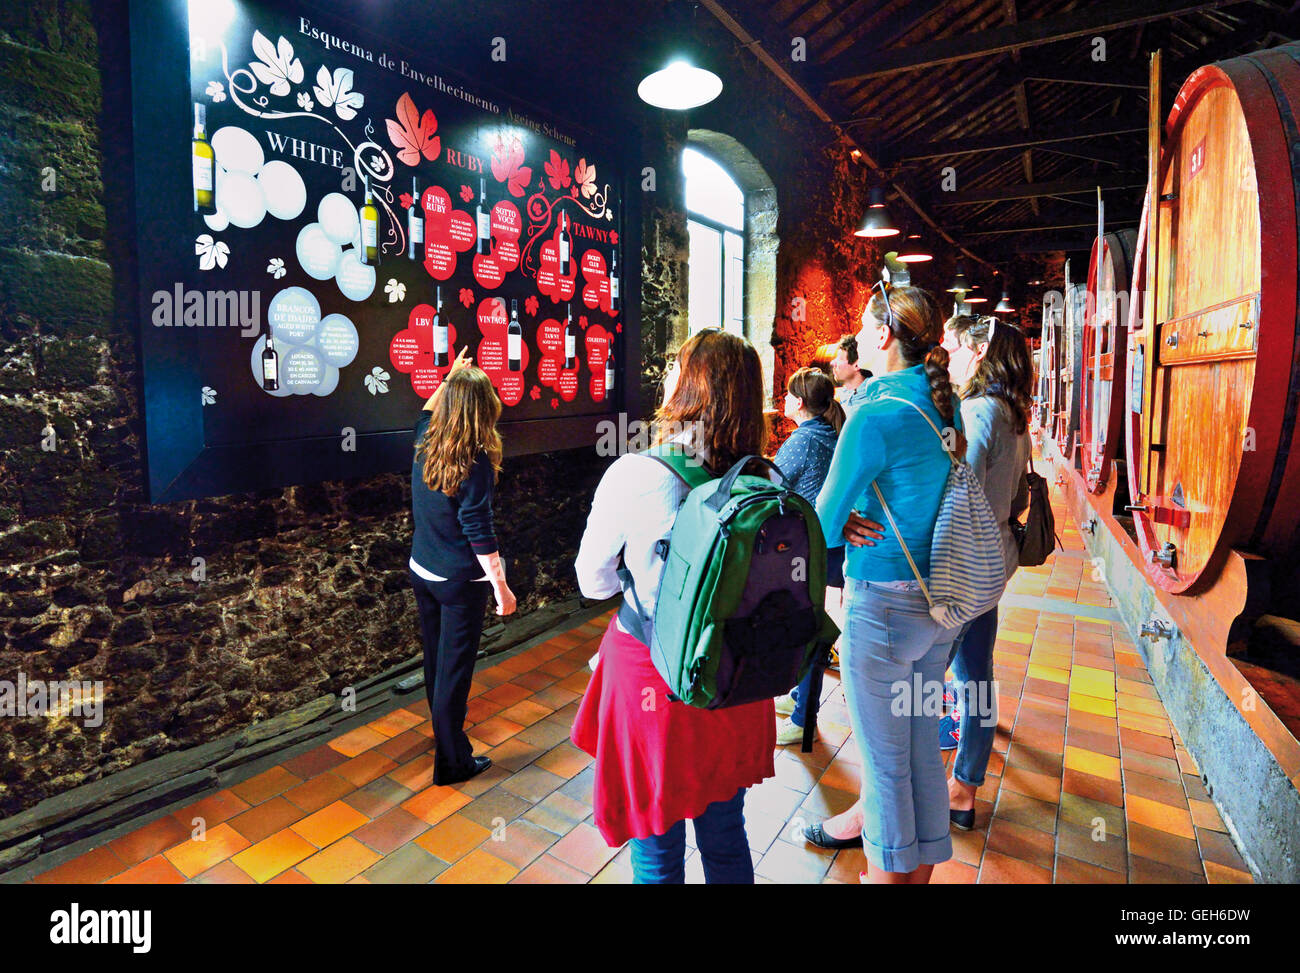 Portugal, Oporto: Tourist group at guided tour about Port wine in the wine cellar Burmester - Stock Image